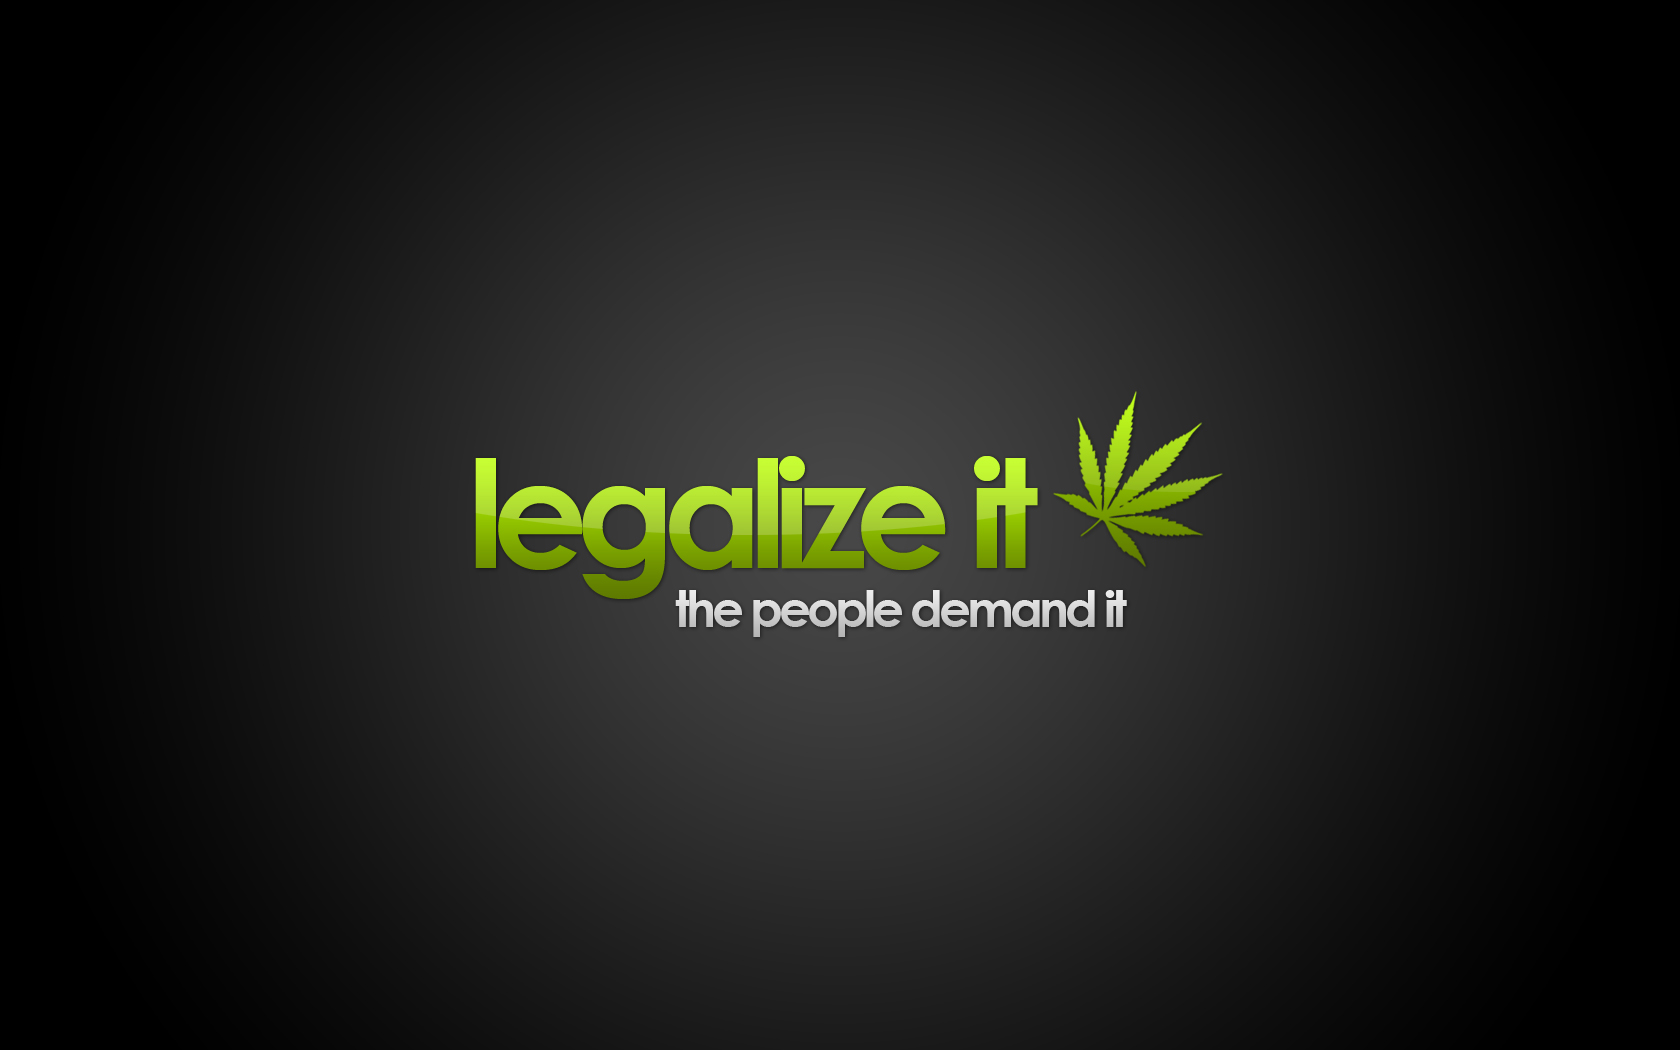 Legalize it by Poisongage